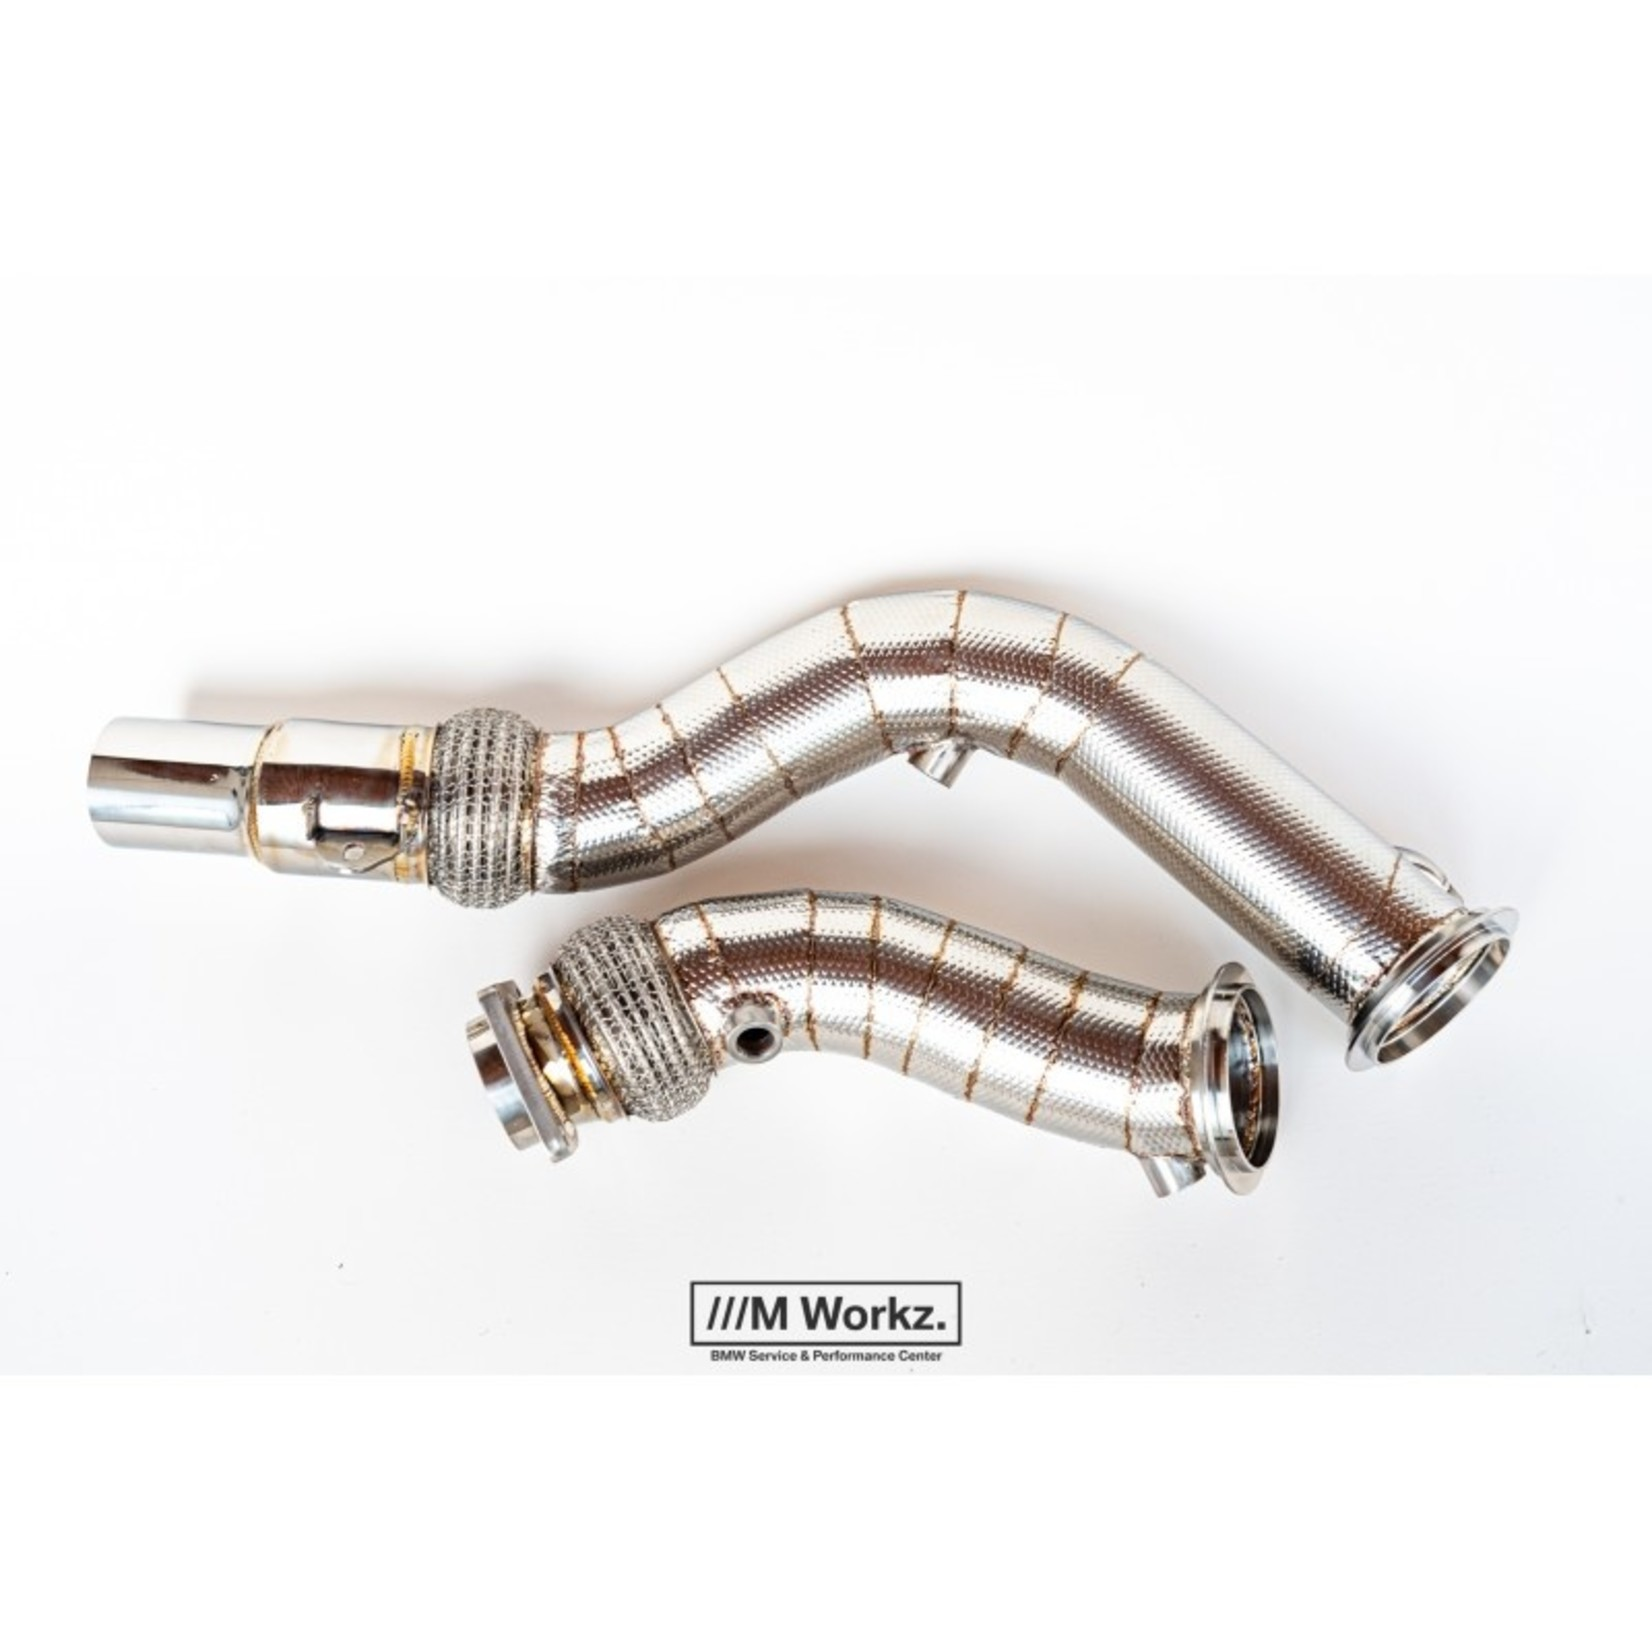 M Workz Competition downpipes S55 M2c/M3/M4